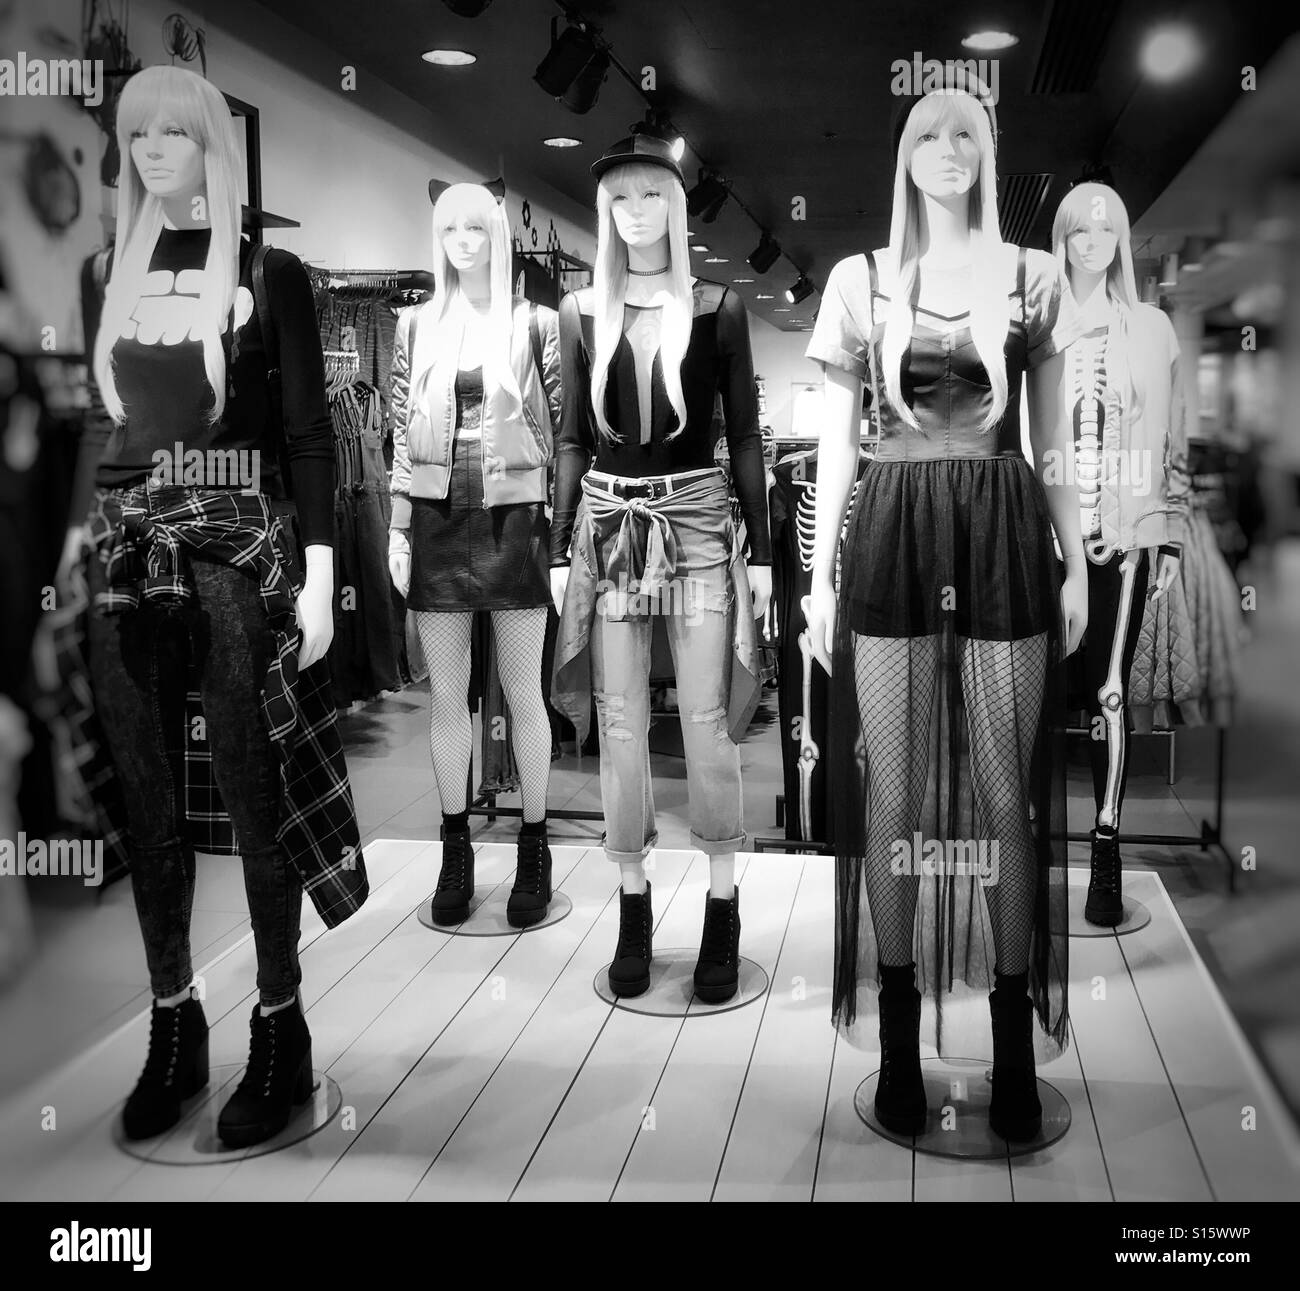 In store display of female mannequins wearing fashionable clothes - Stock Image